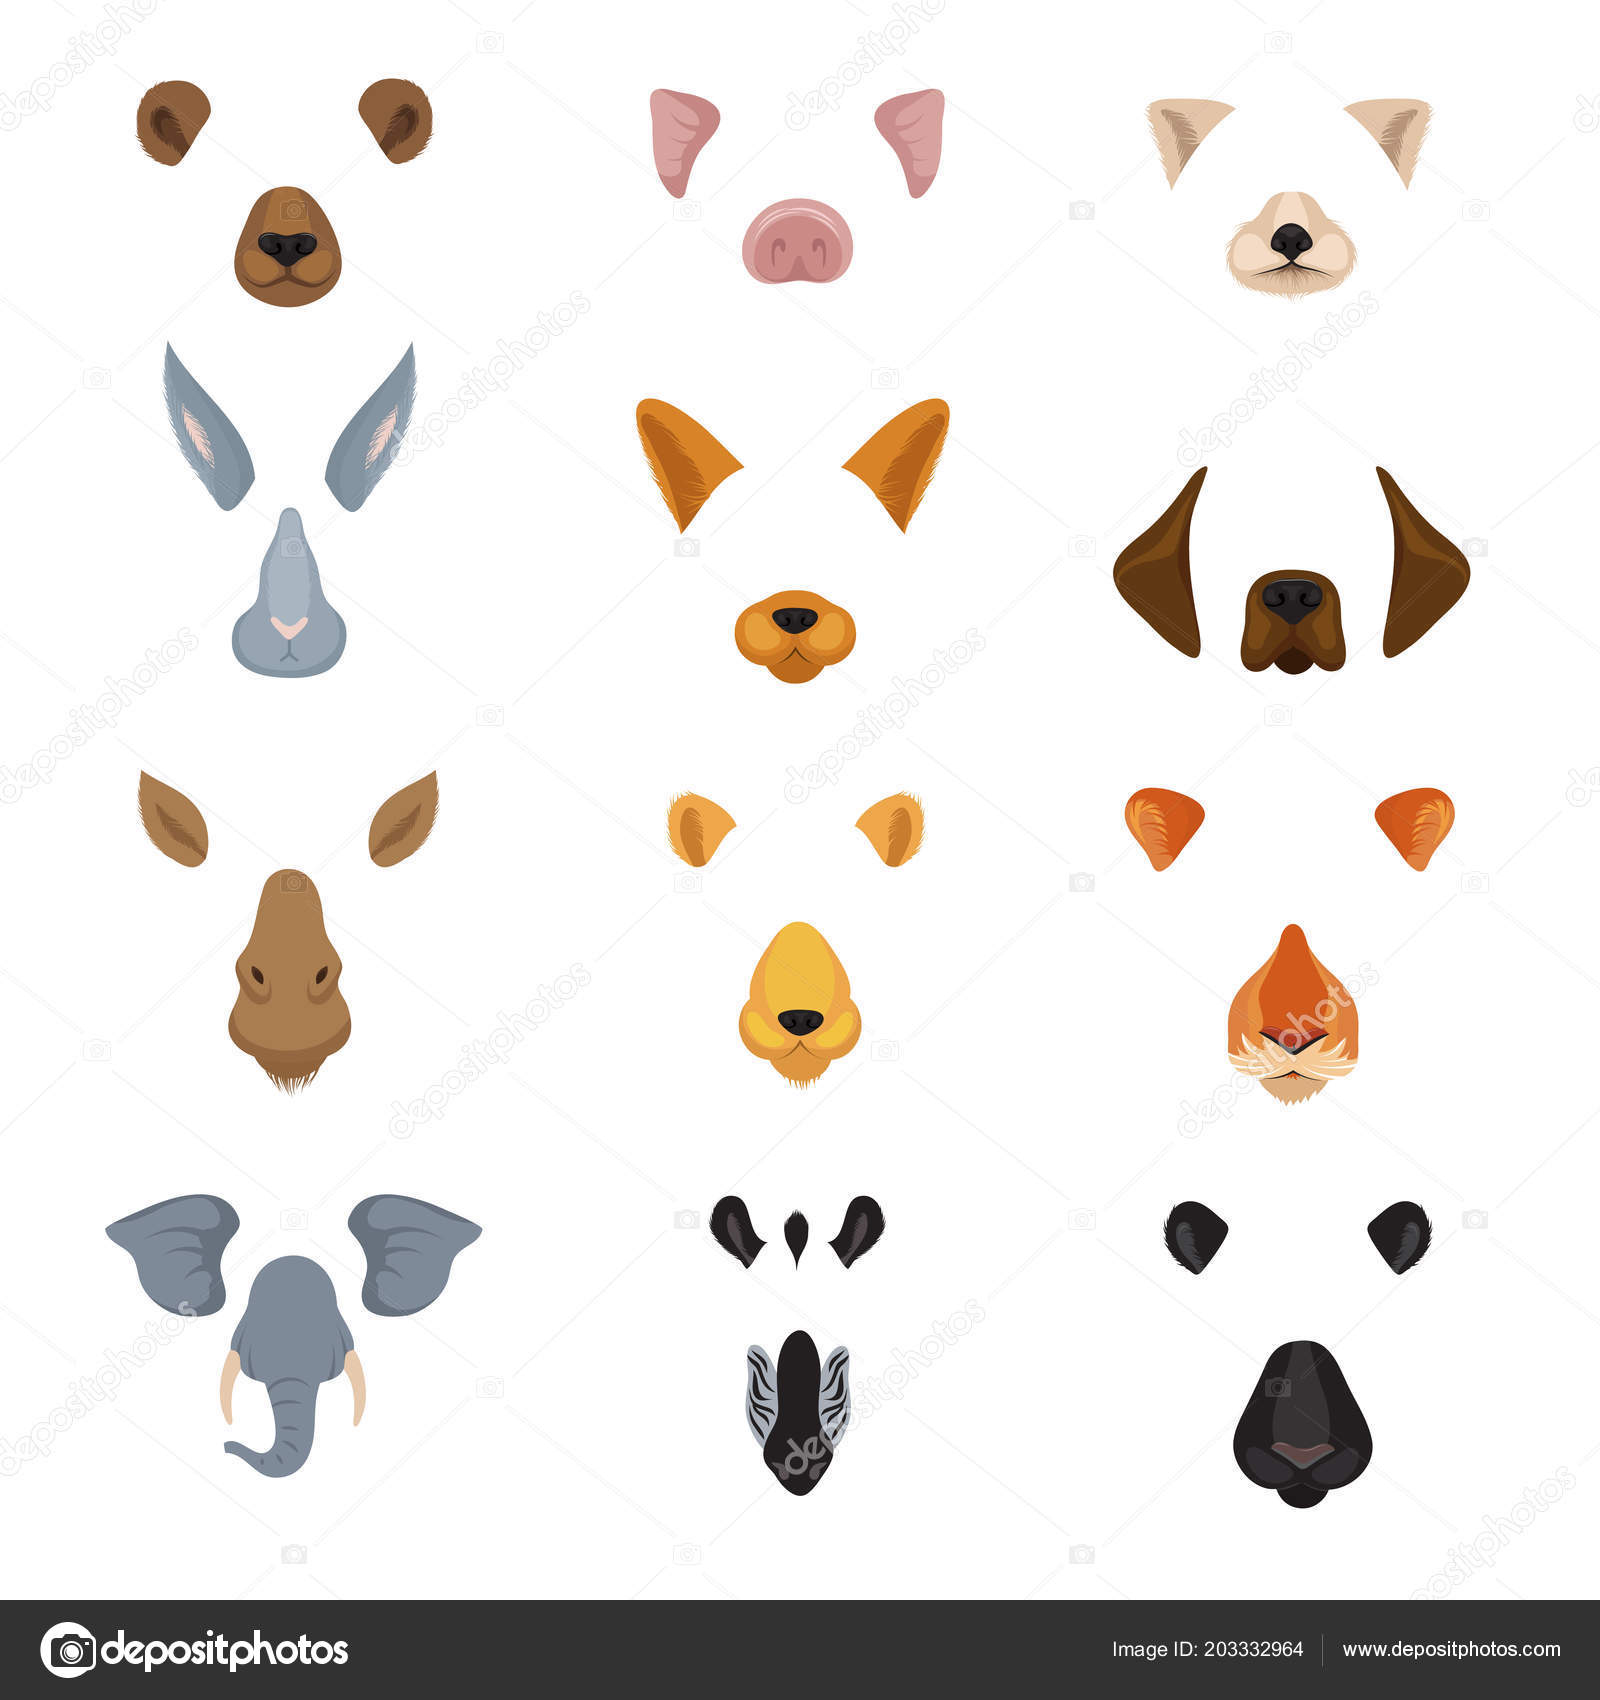 Image of: Dogs Funny Animal Faces For Phone Video Chart App Cartoon Animals Ears And Noses Vector Set Bollyberg Funny Animal Faces For Phone Video Chart App Cartoon Animals Ears